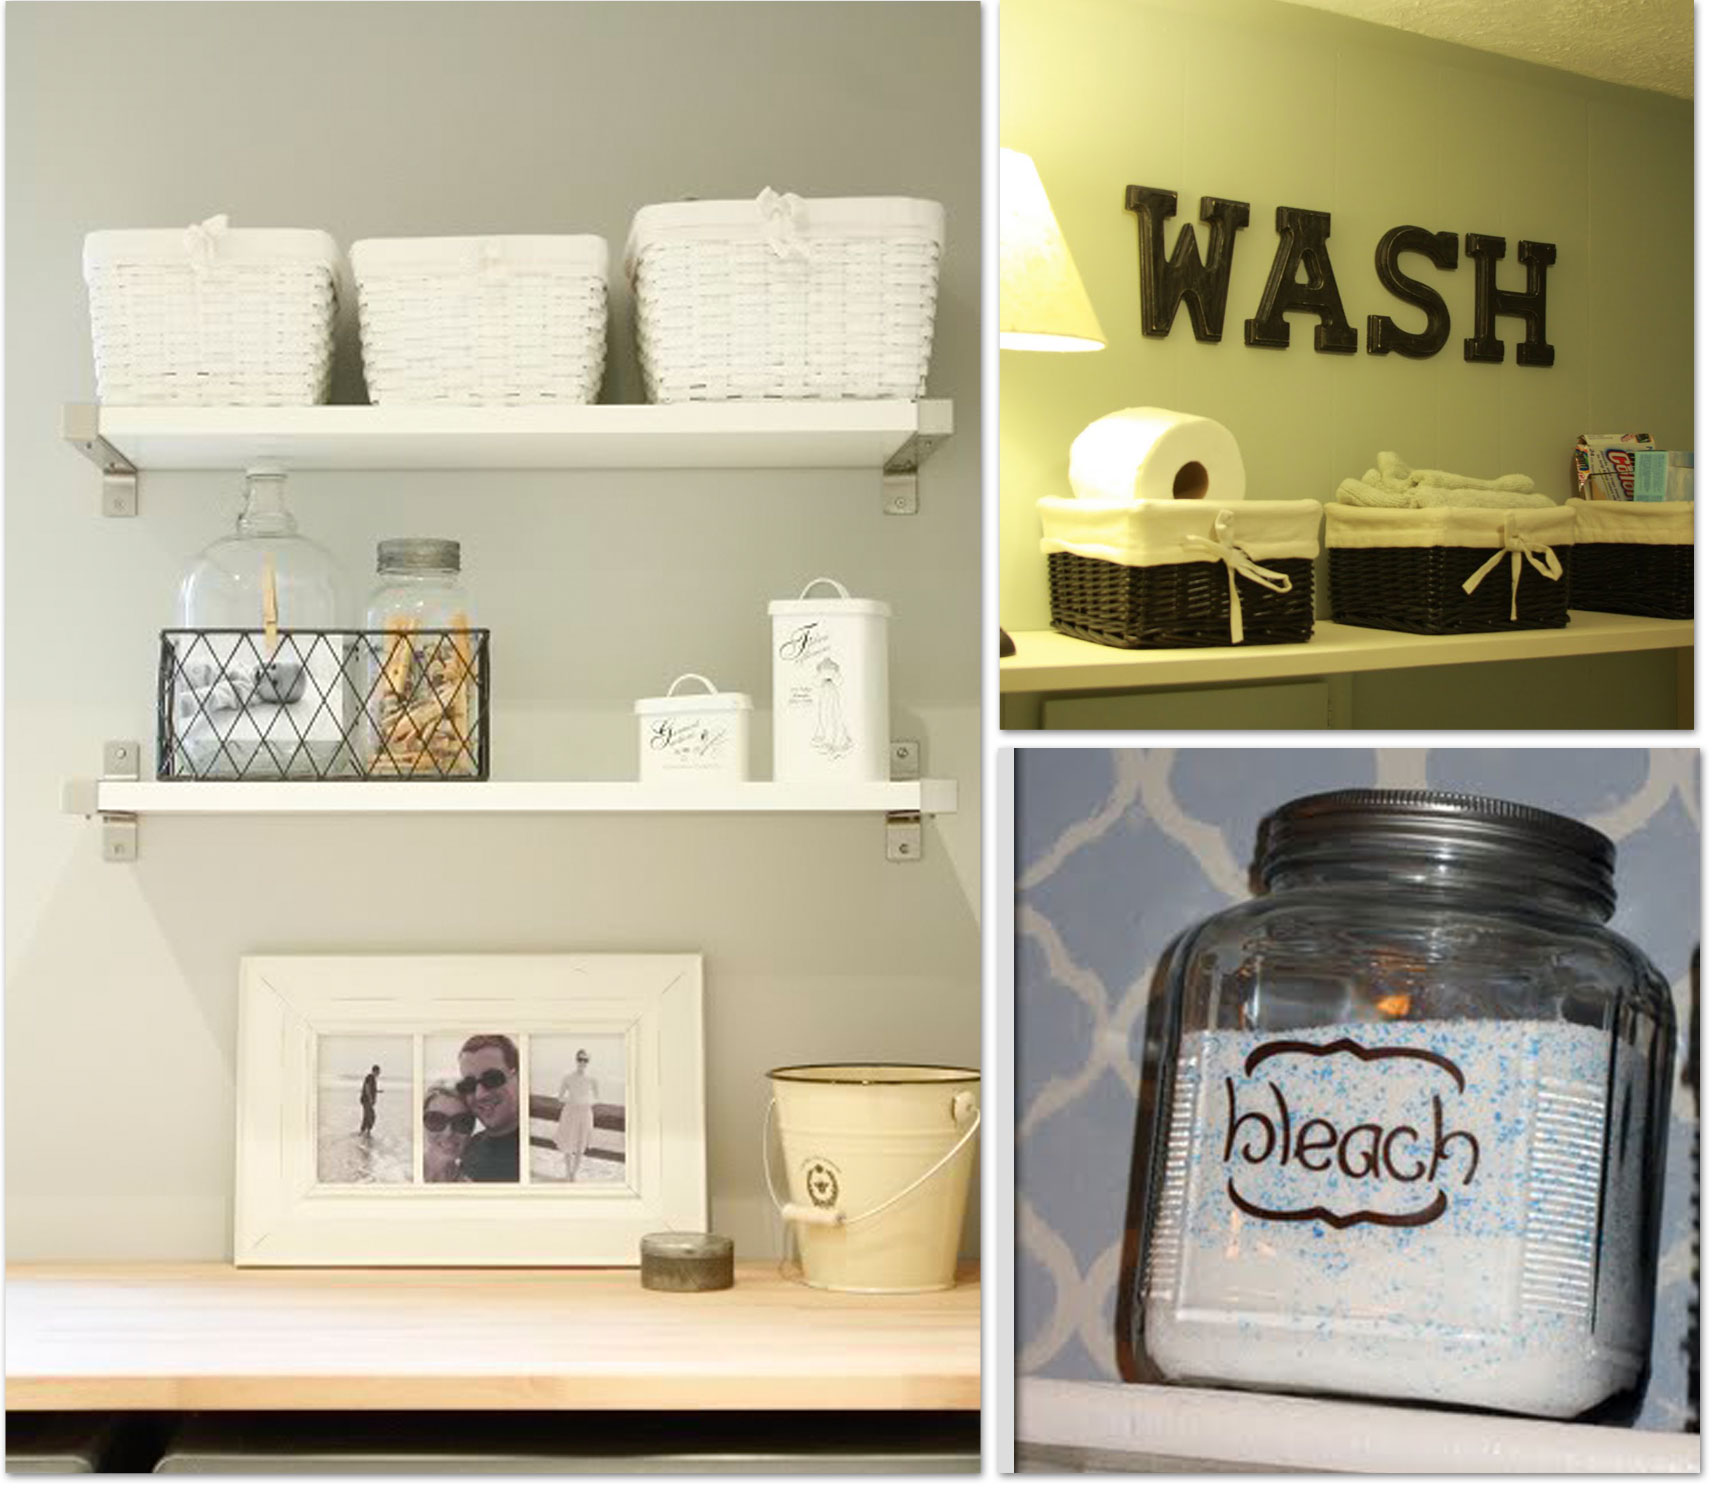 Awesome Utility Room Ideas. Simple Shelves Idea For Organizing Boxes Washing  Supplies And Some Decorative Items Like A Picture Frame